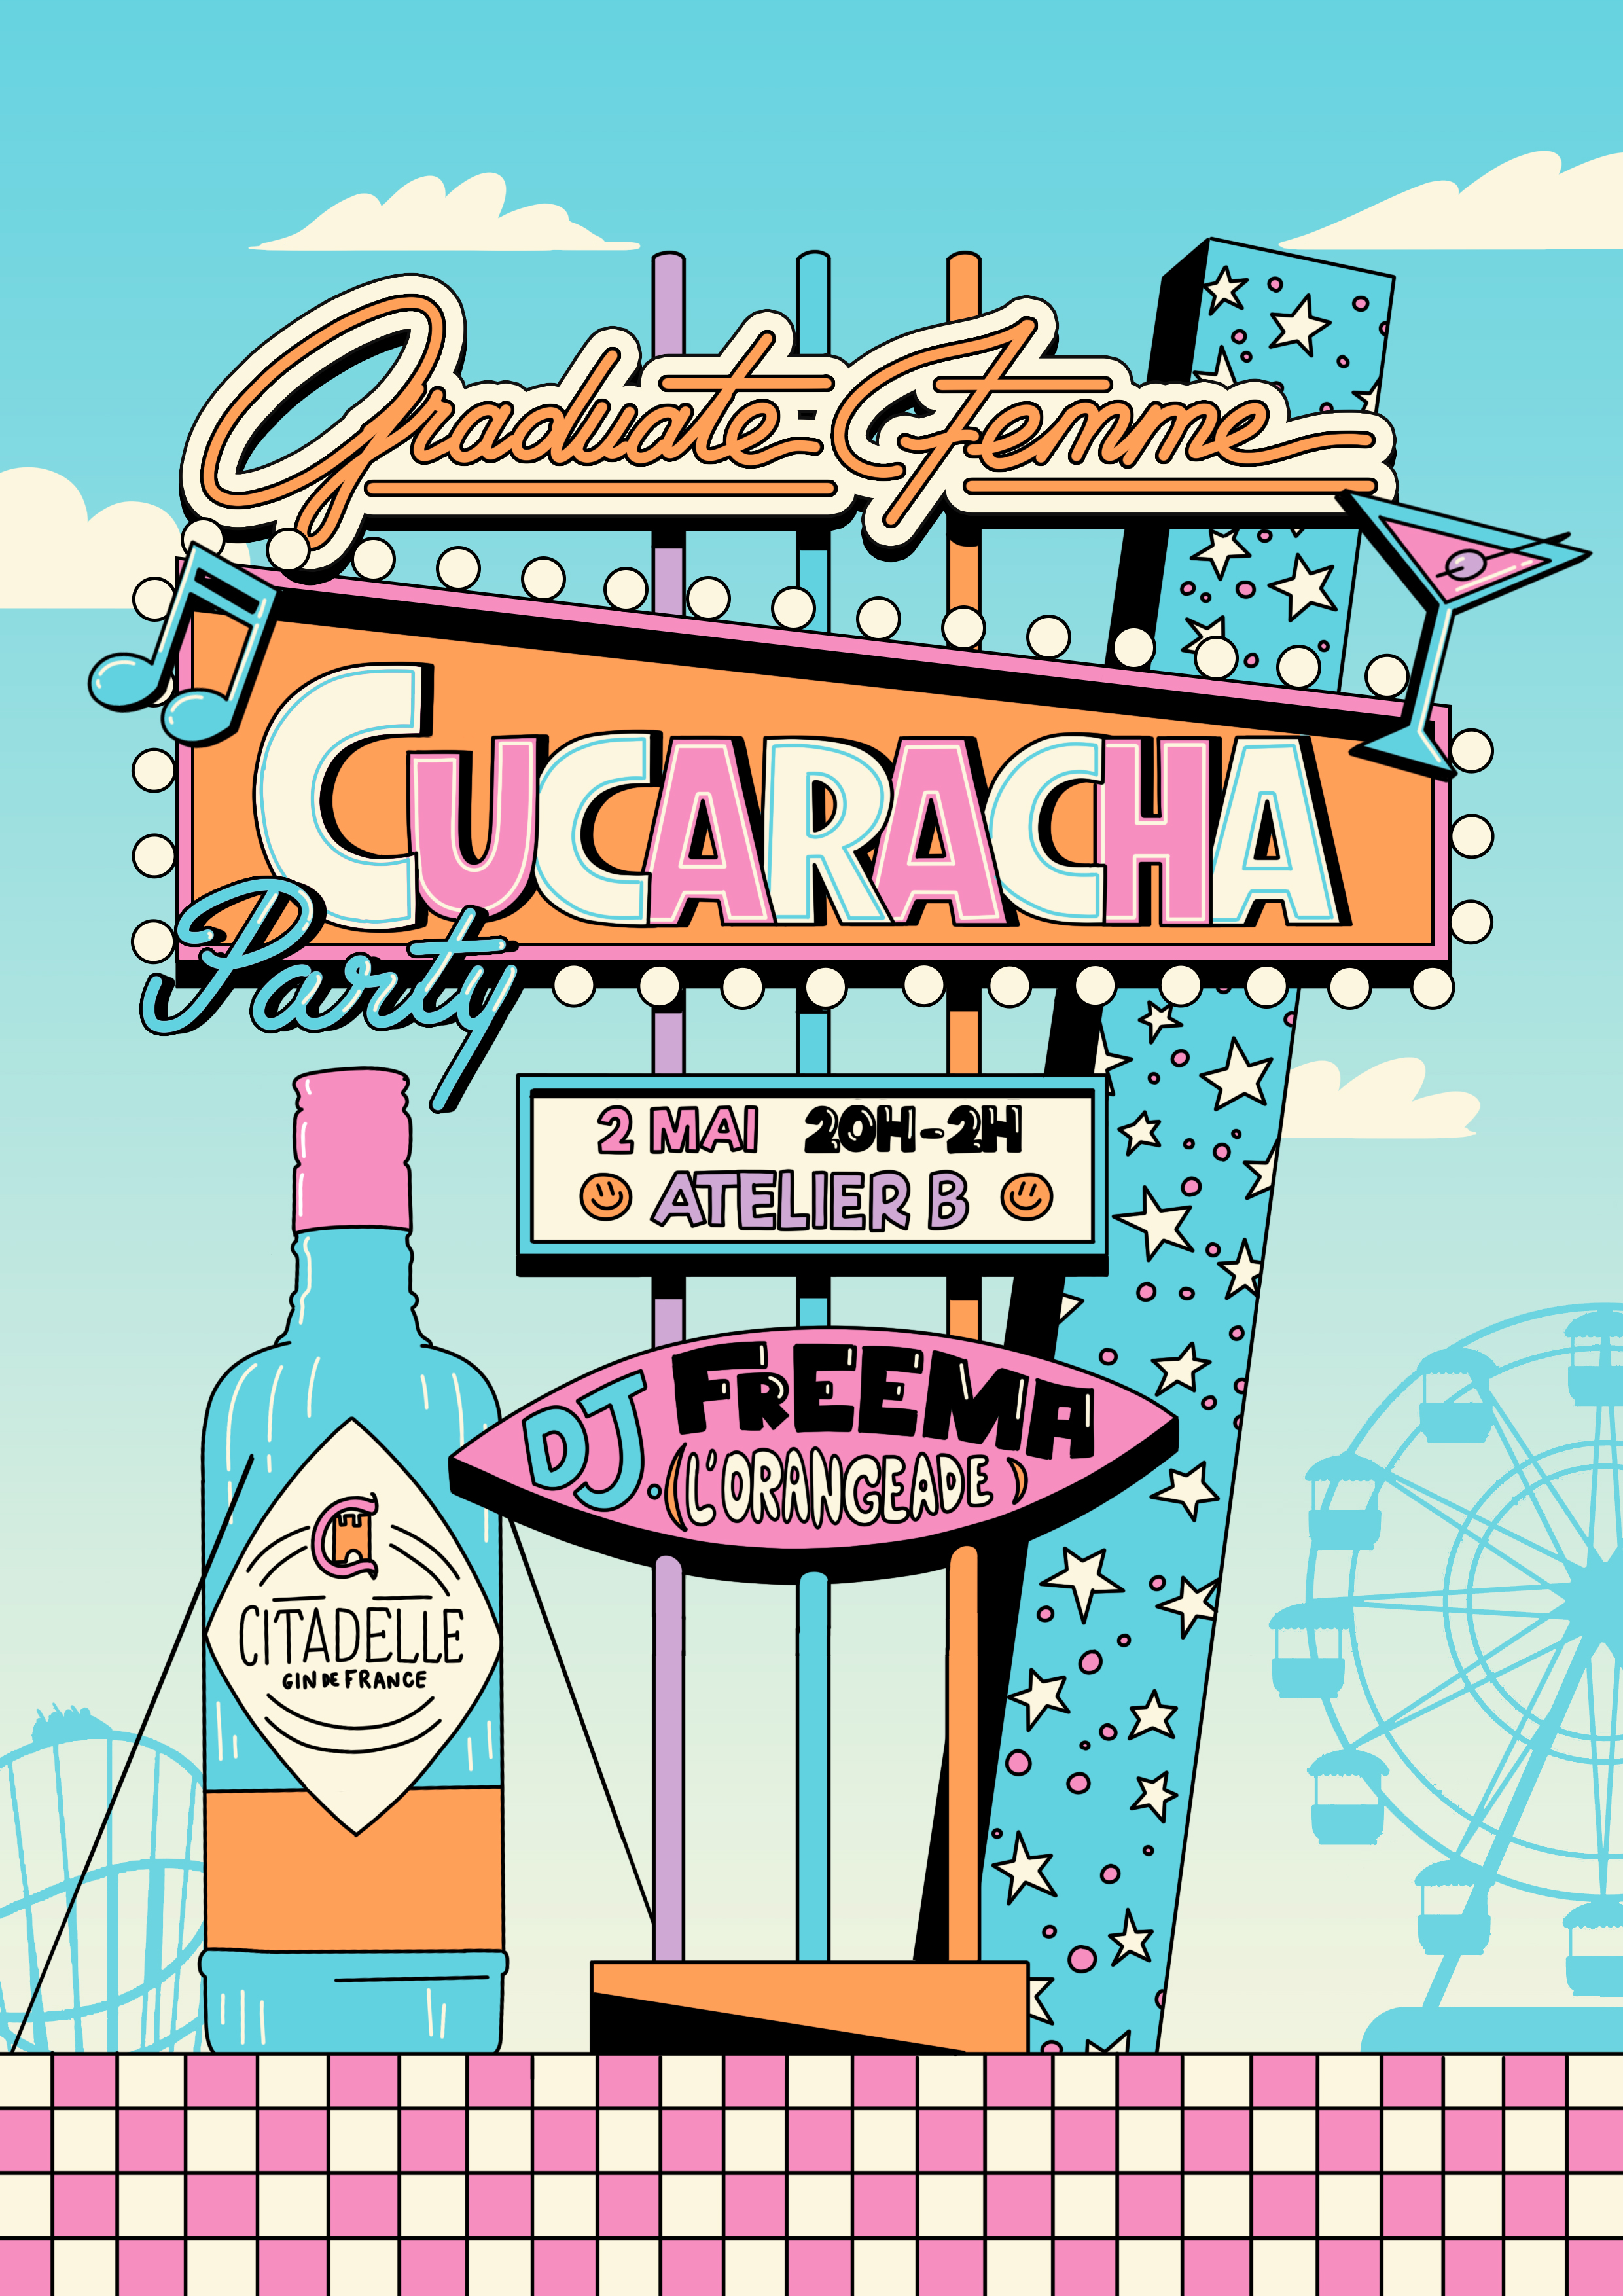 Cucaracha_Party_Visuel